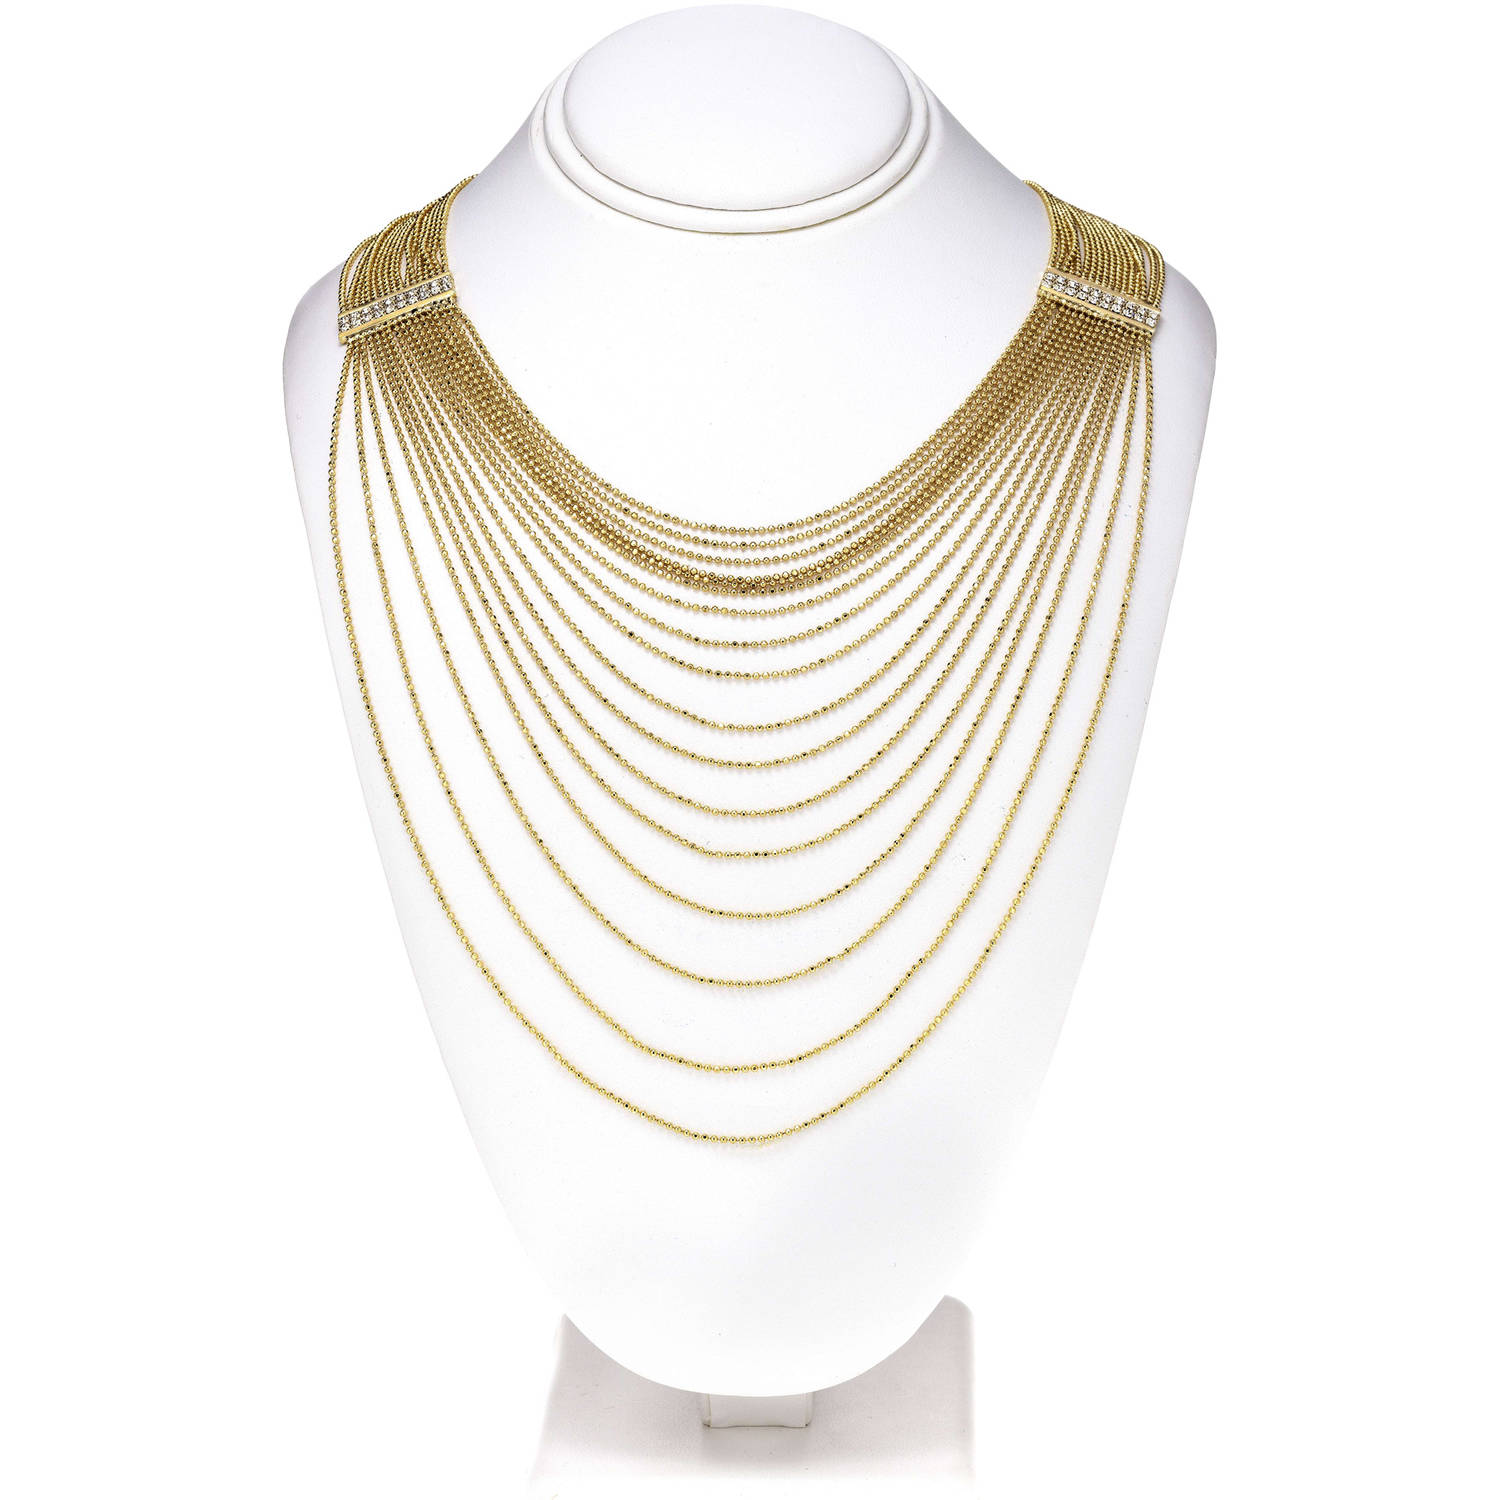 X & O Handset Austrian Crystal 14kt Gold-Plated Rectangle Drape Chain